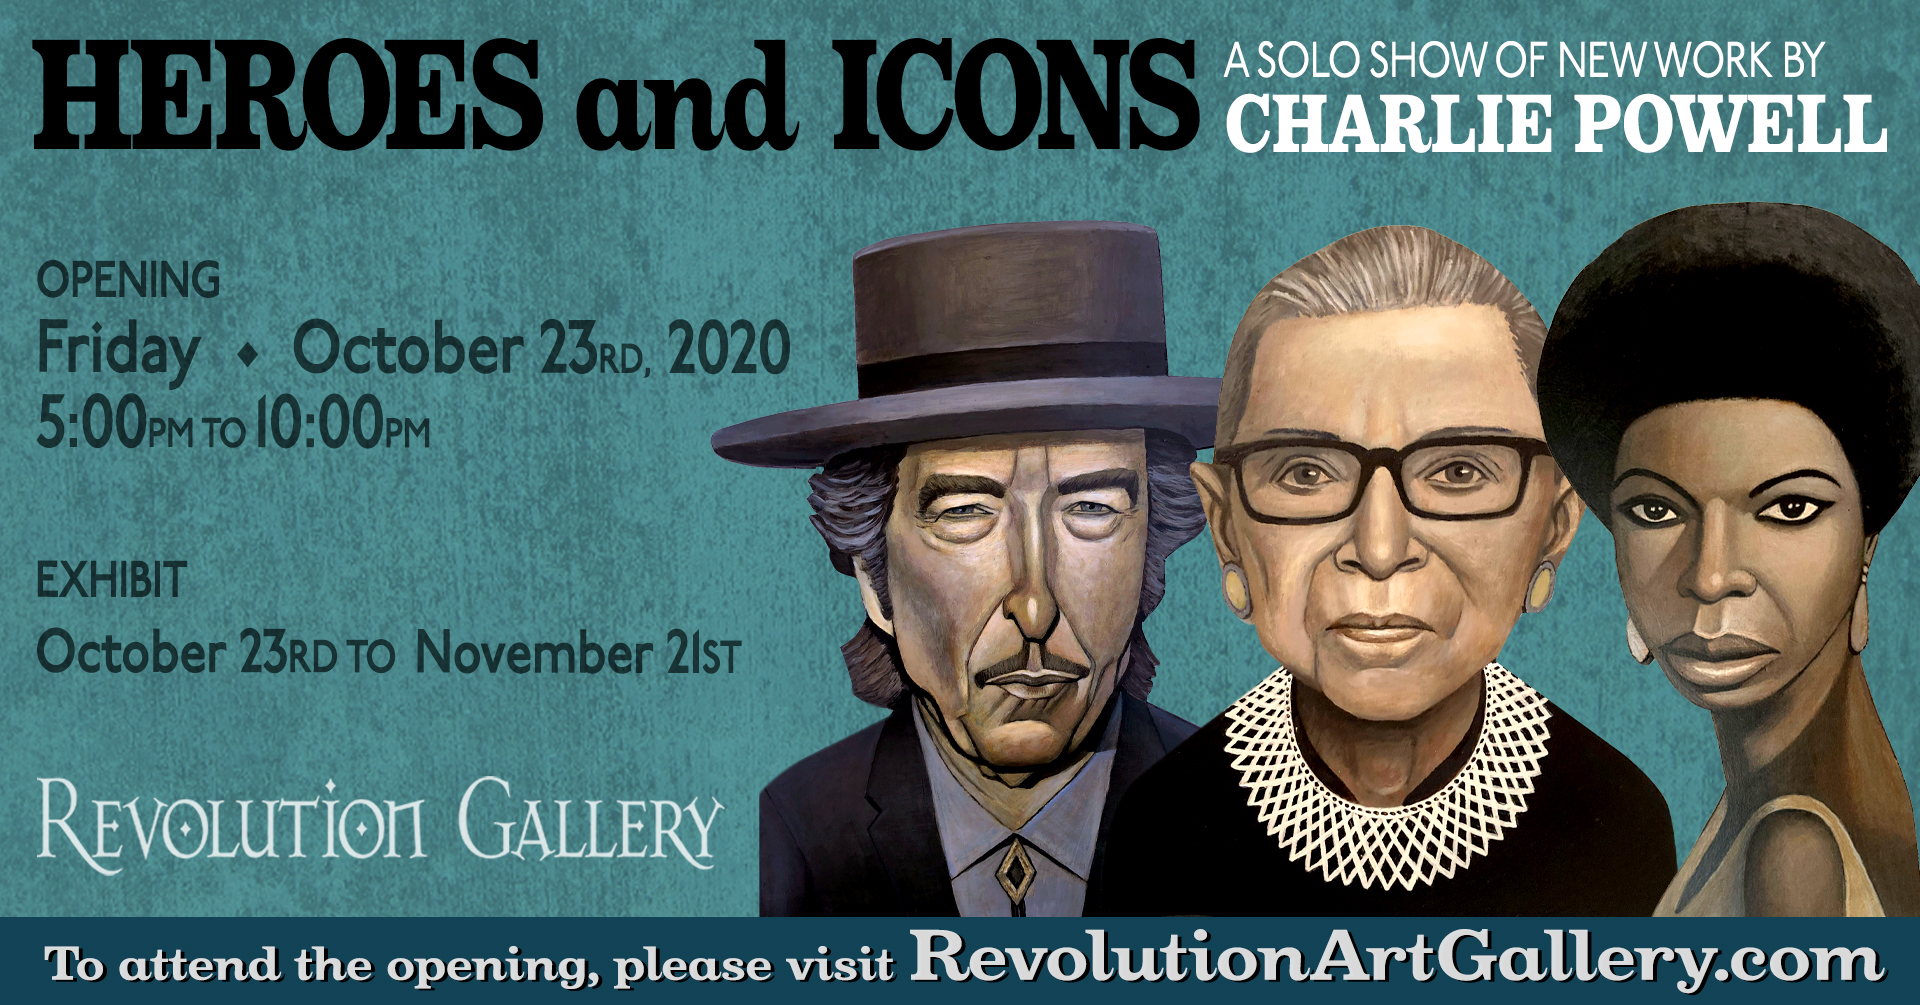 CURRENT EXHIBIT     October 23rd to November 21st